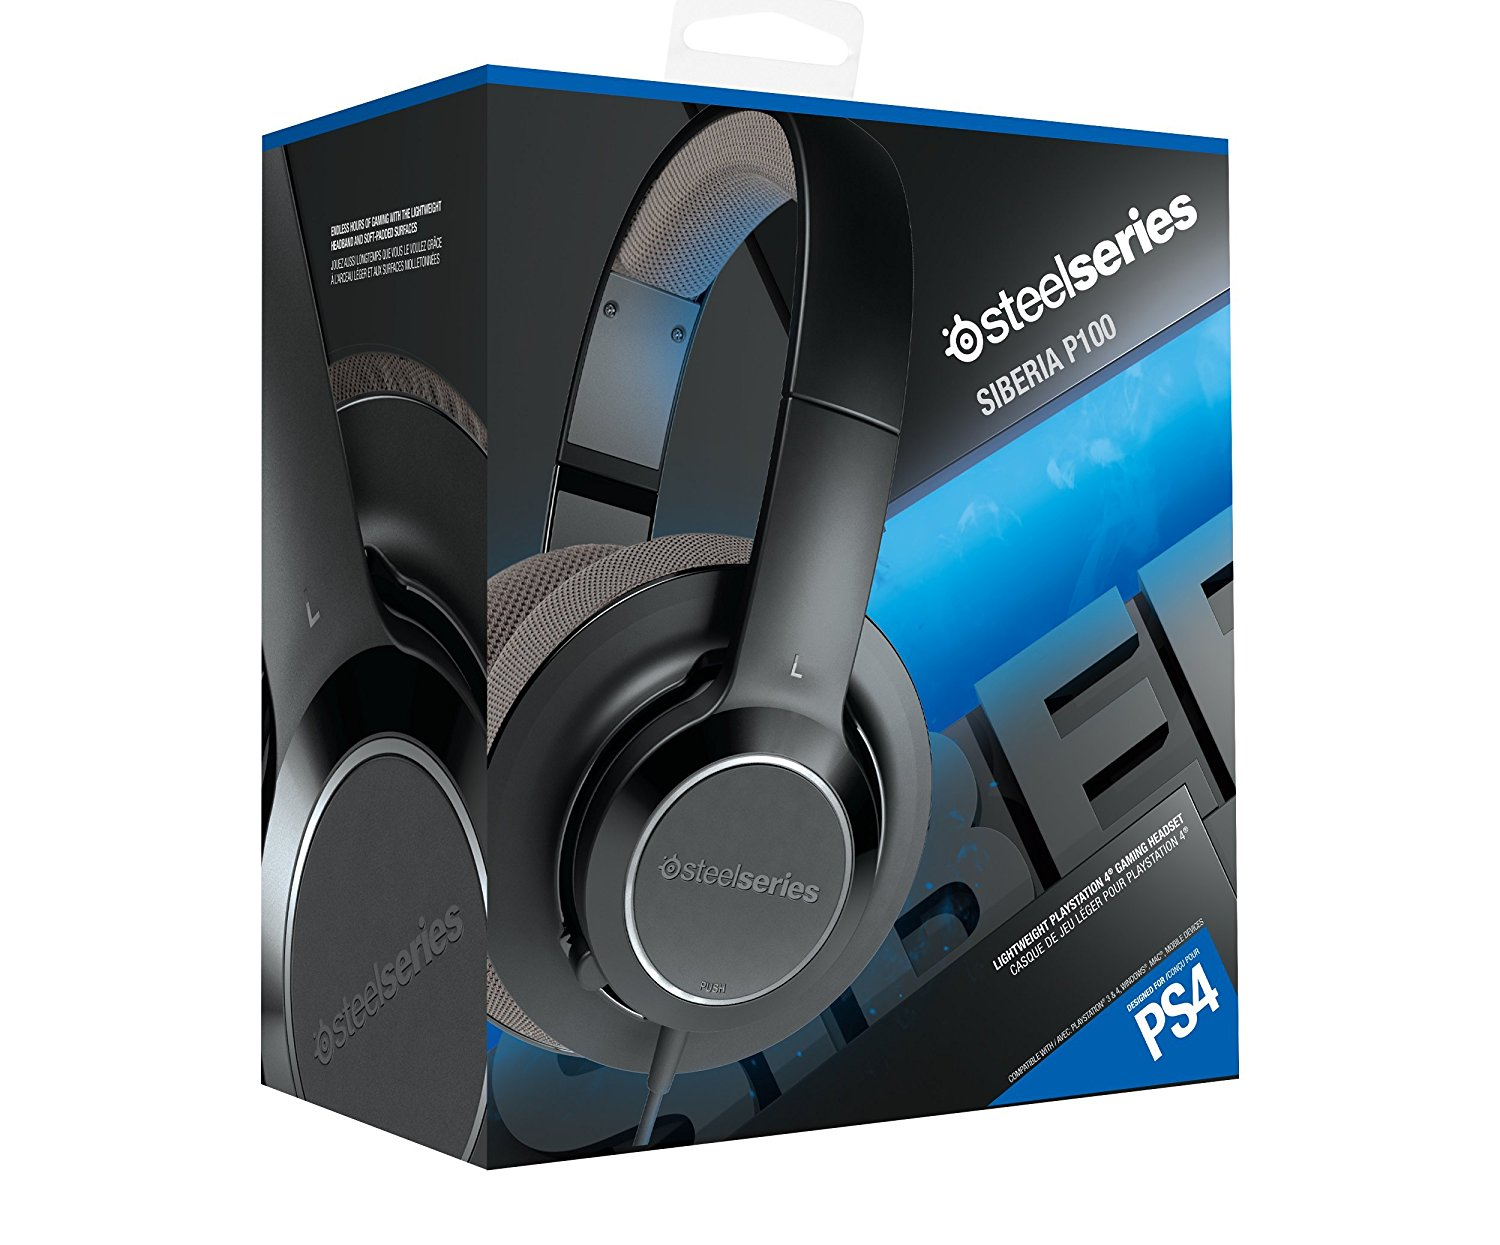 Steelseries Siberia P100